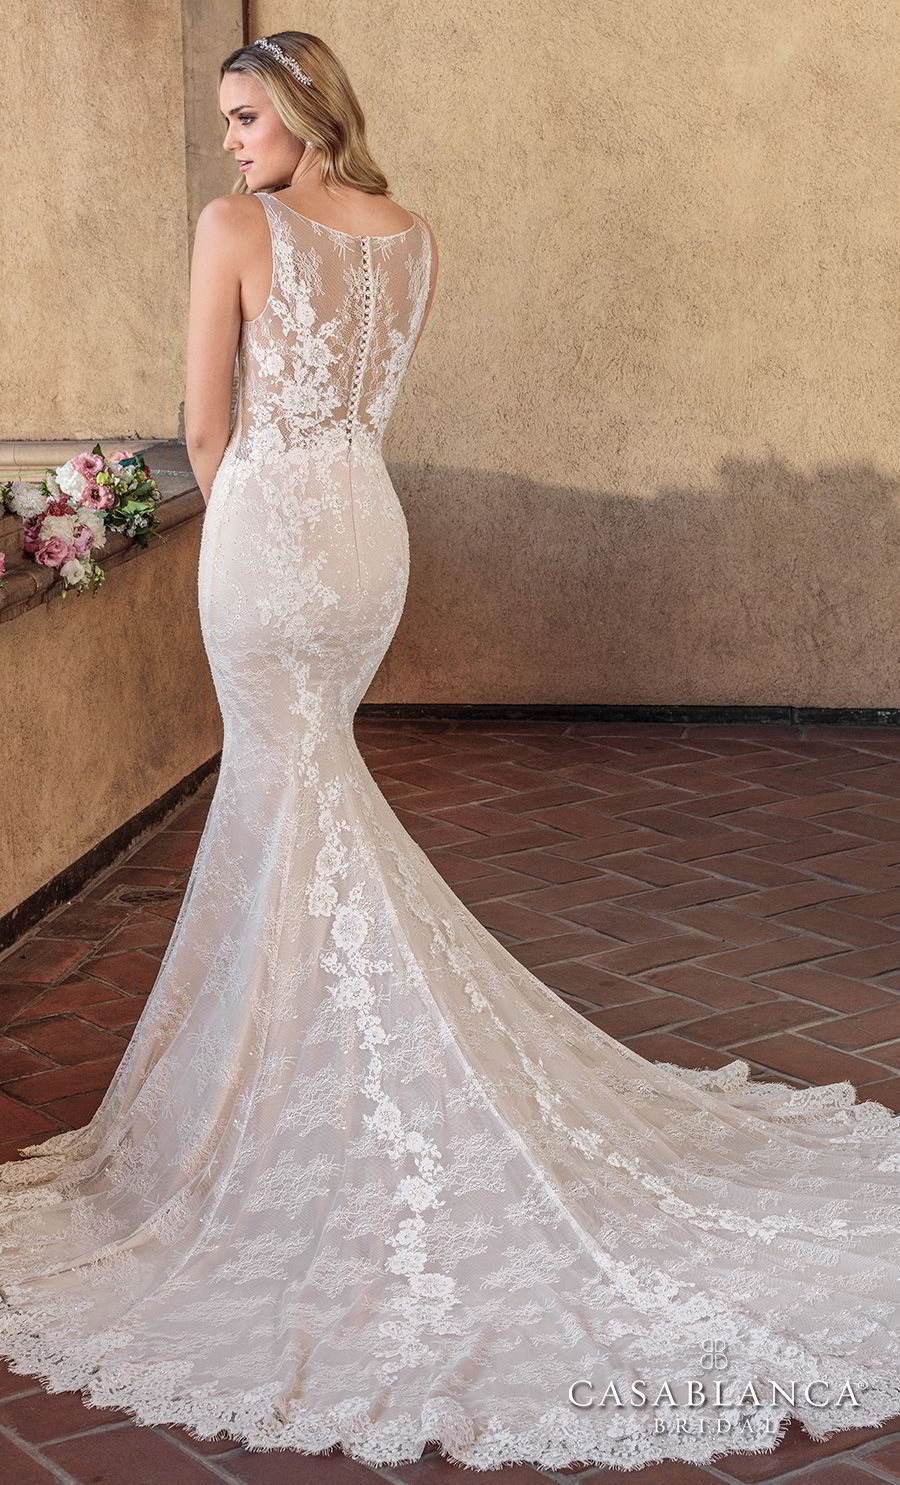 casablanca spring 2018 sleeveless deep v neck full embellishment elegant fit and flare wedding dress sheer lace back chapel train (chloe) bv